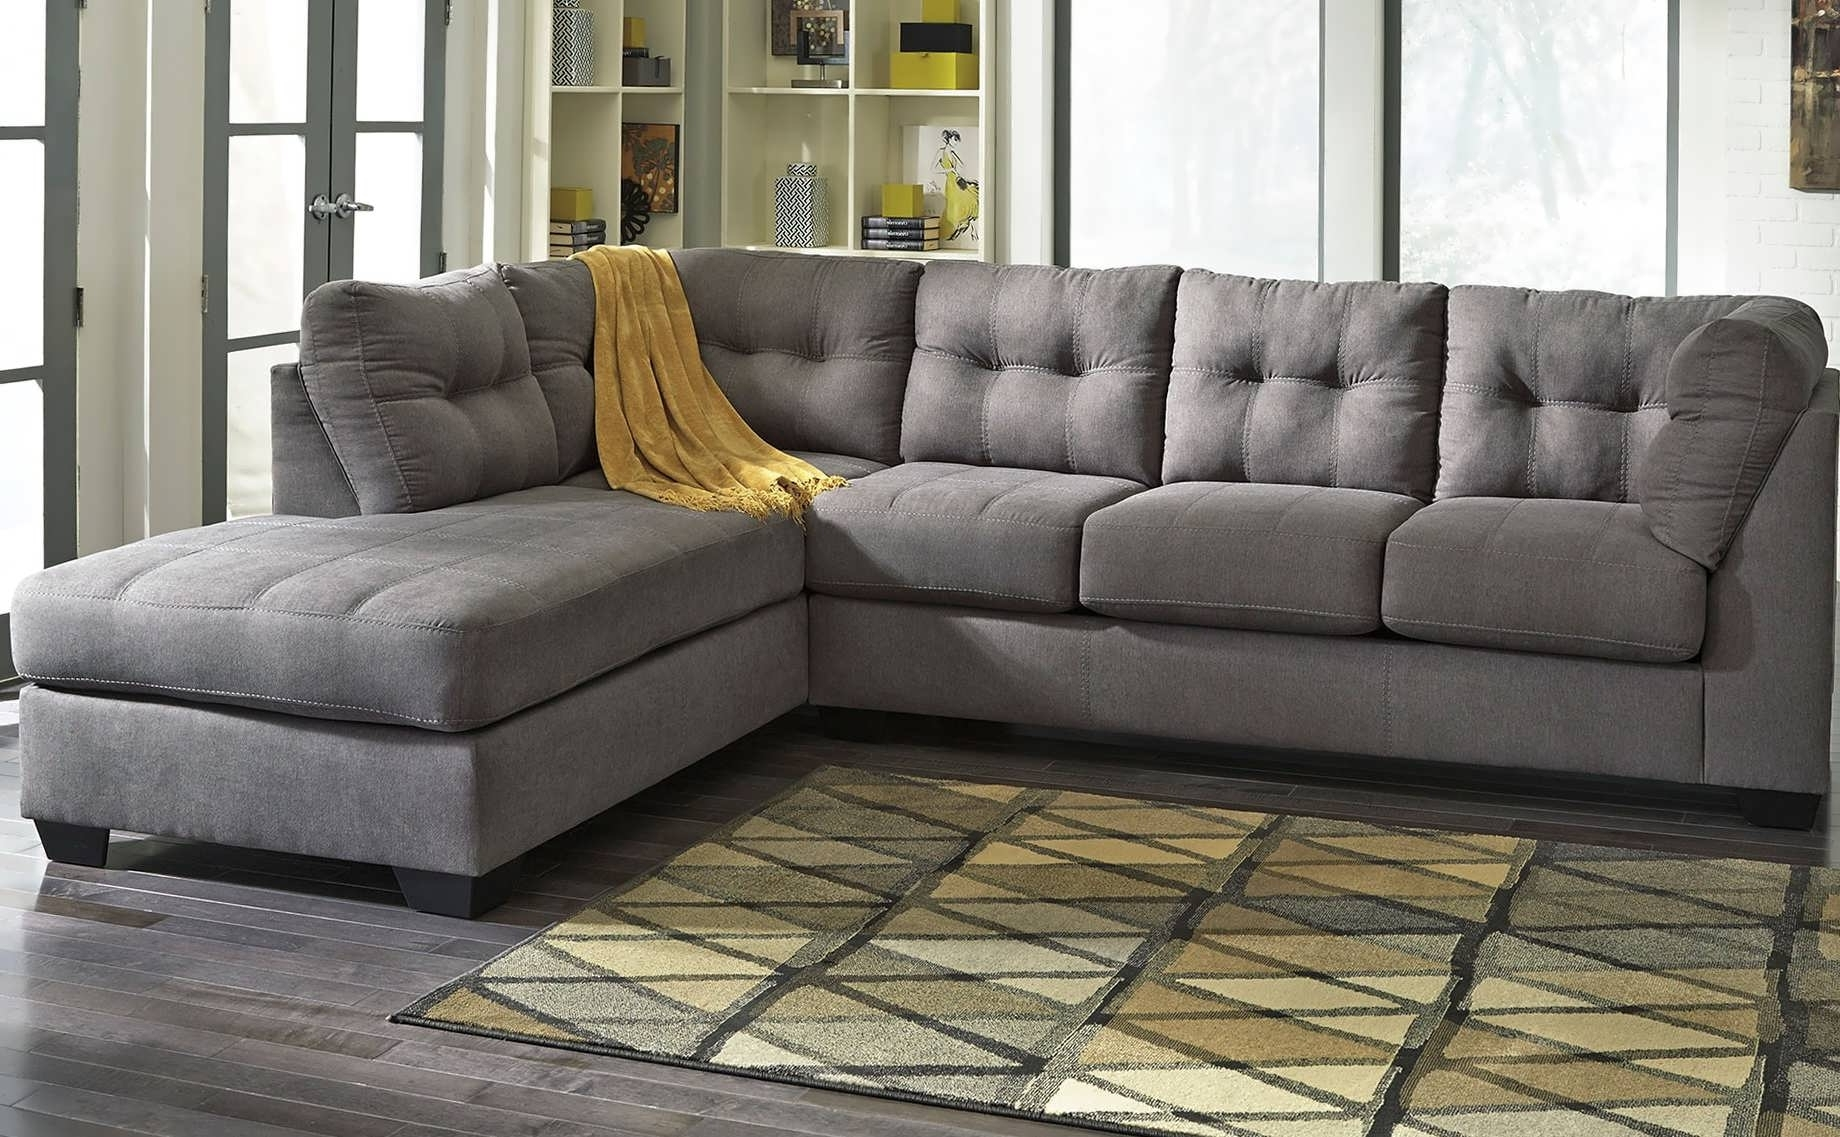 Sofa : Large Grey Sectional Couch Gray Sectional Couch Large inside Popular Grey Couches With Chaise